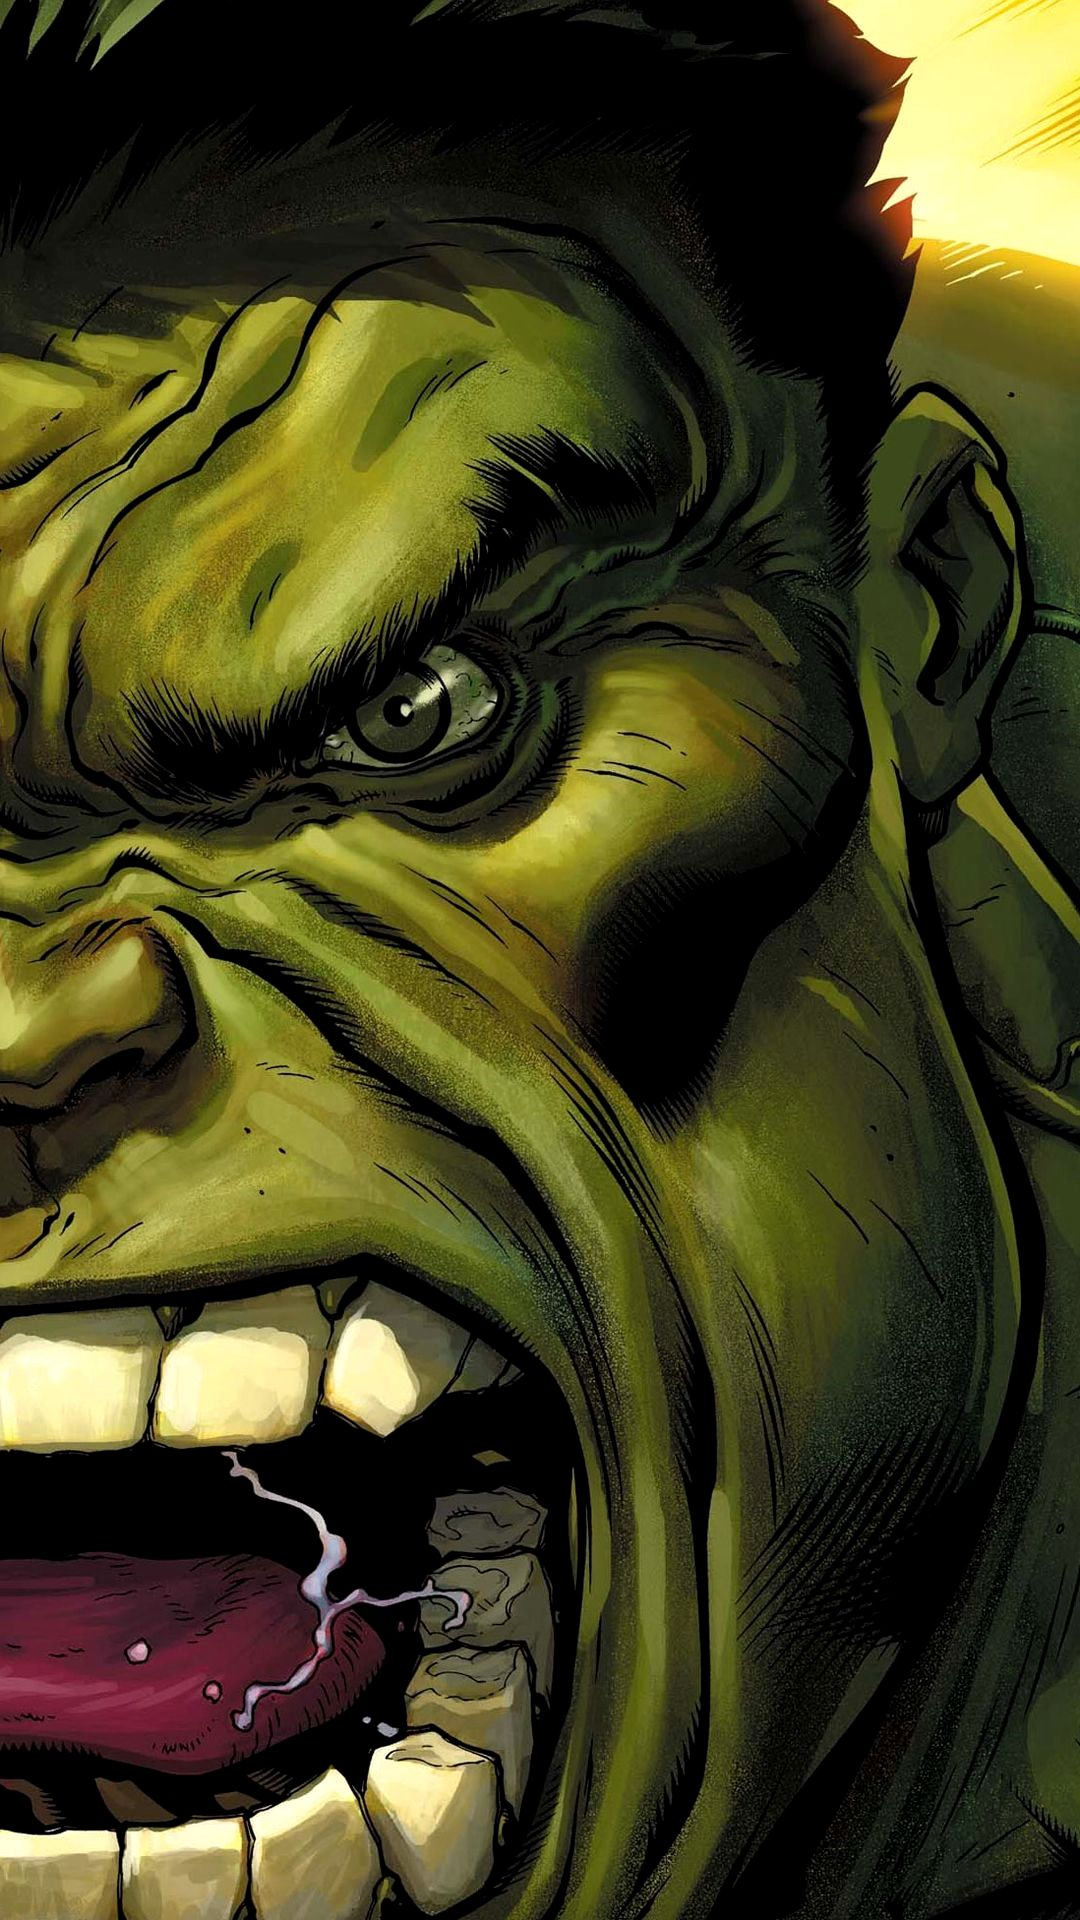 Hulk Wallpaper 4k Iphone Ideas In 2020 Hulk Art Marvel Comics Wallpaper Hulk Comic